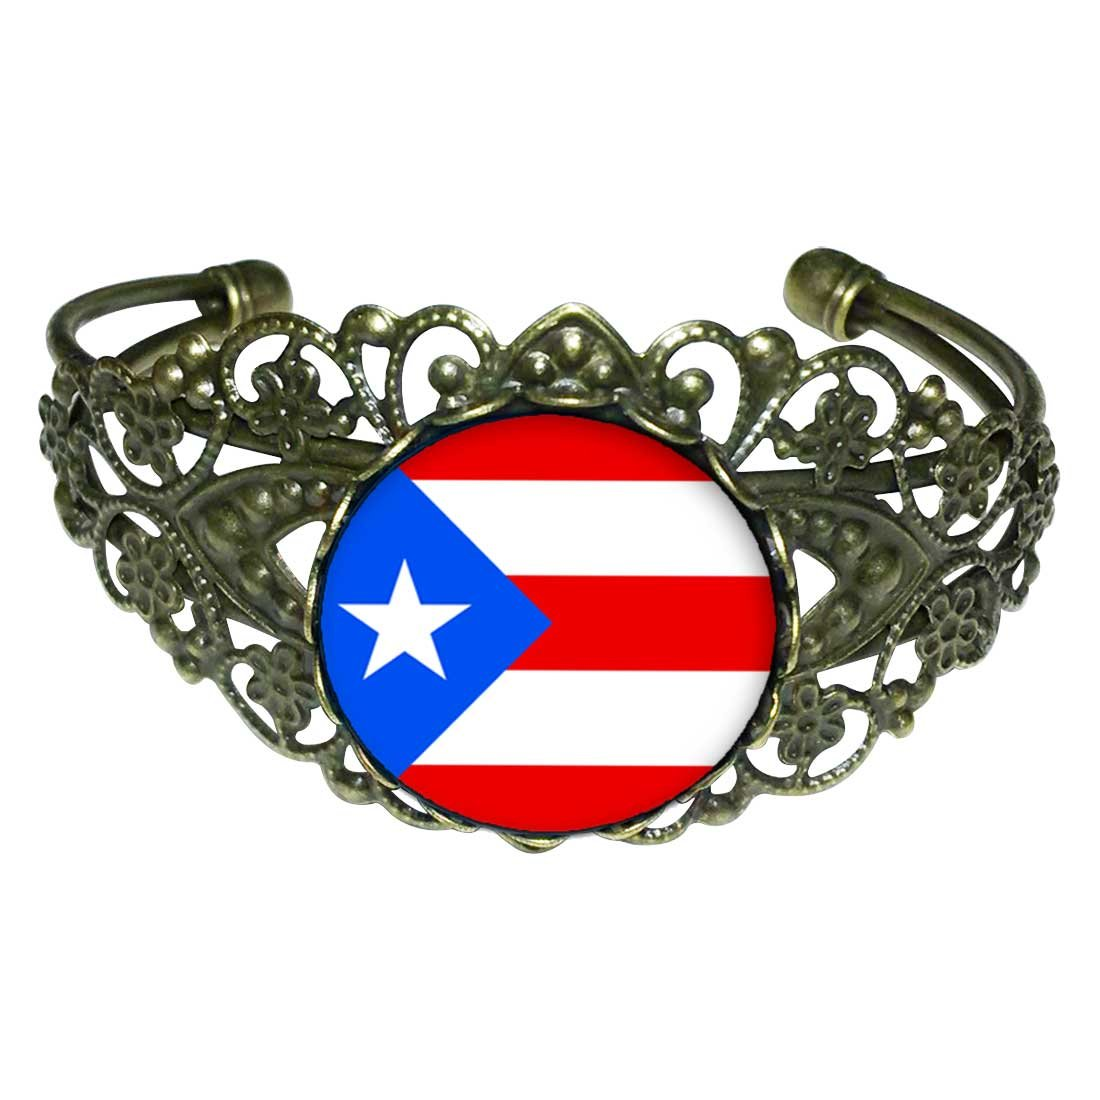 GiftJewelryShop Bronze Retro Style Puerto Rico flag Flower Cuff Bangle Bracelet Fashion Jewelry